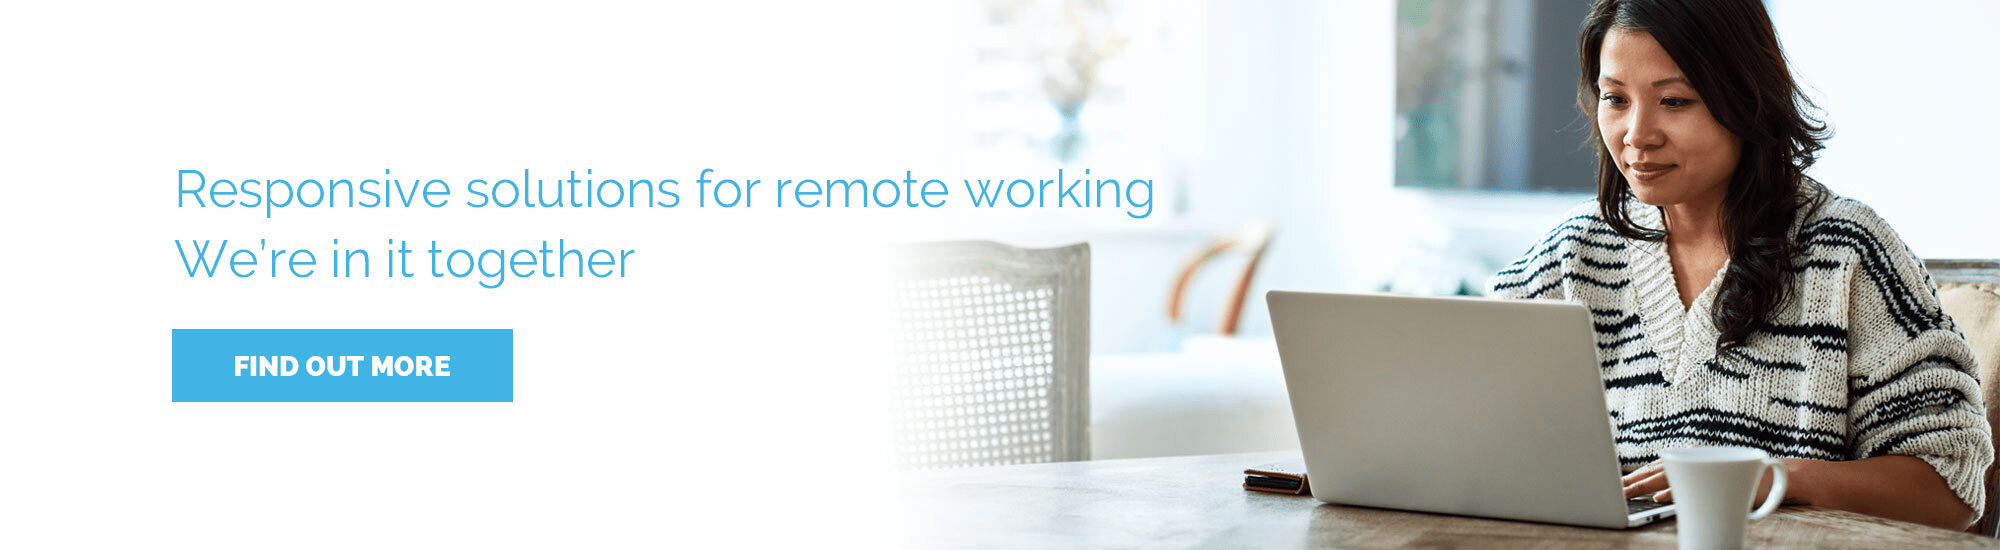 Tactical remote working solutions Homepage banner